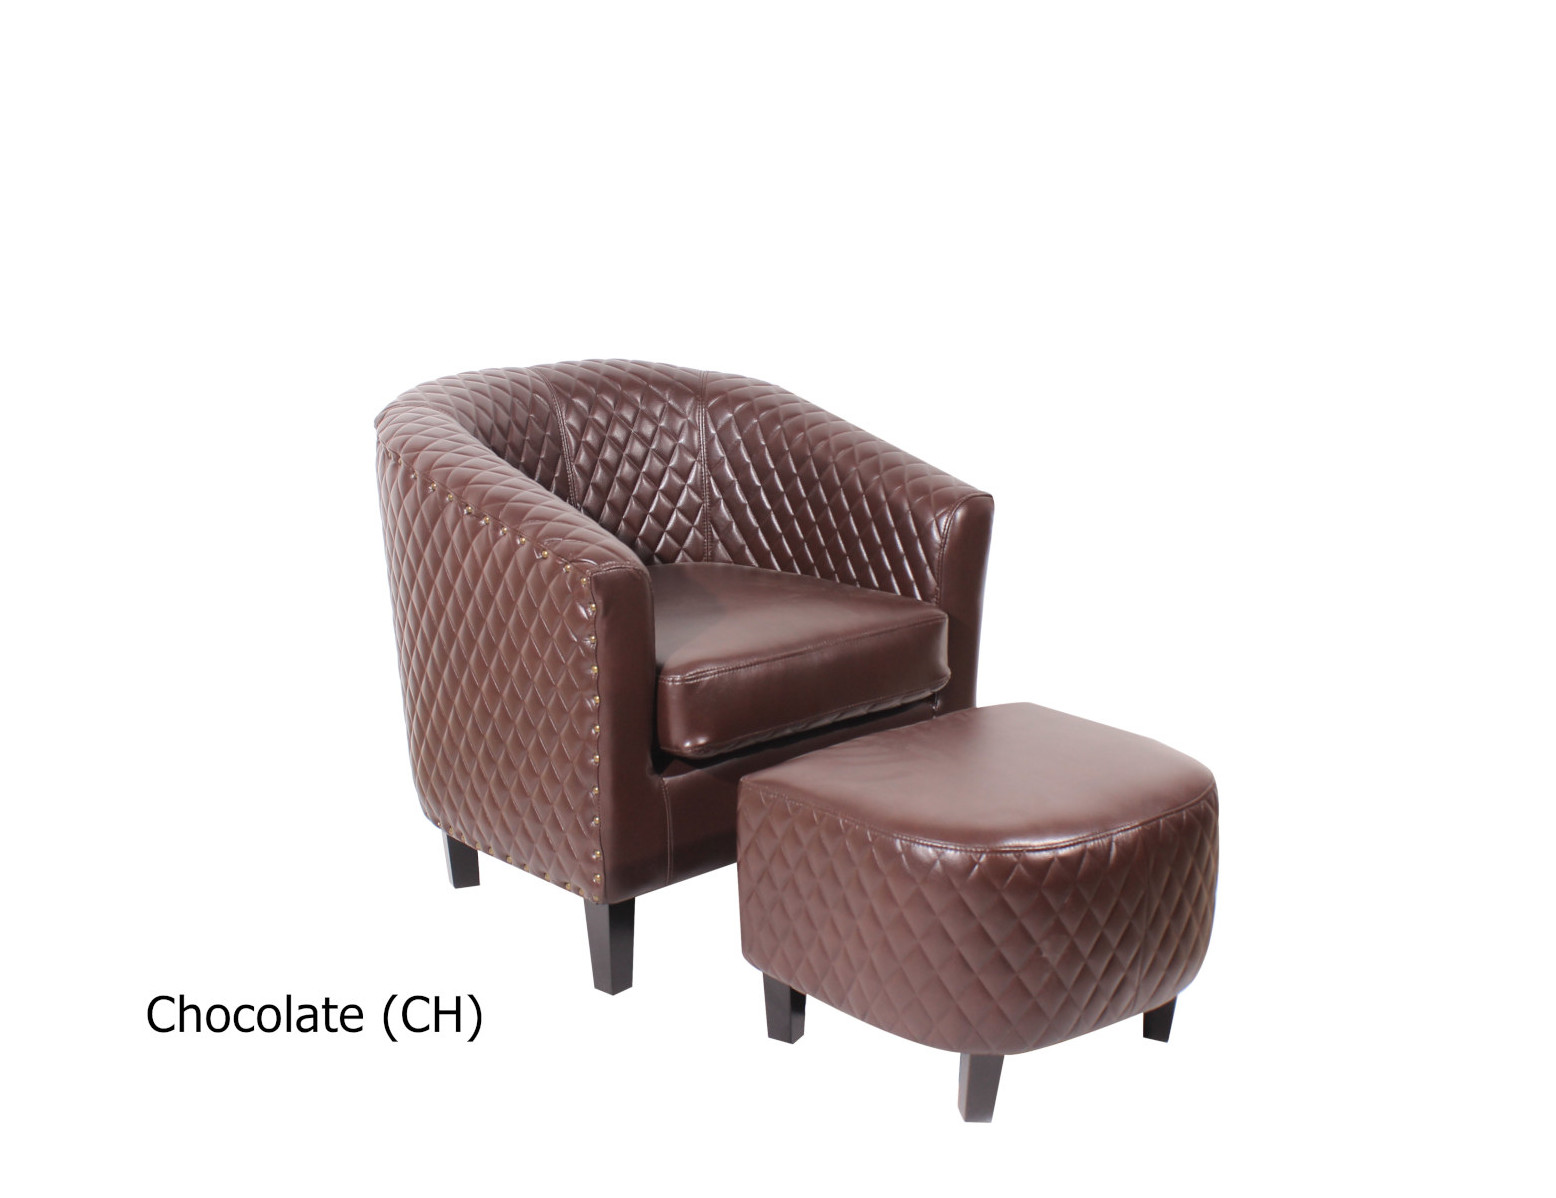 23207 – Chair and Stool